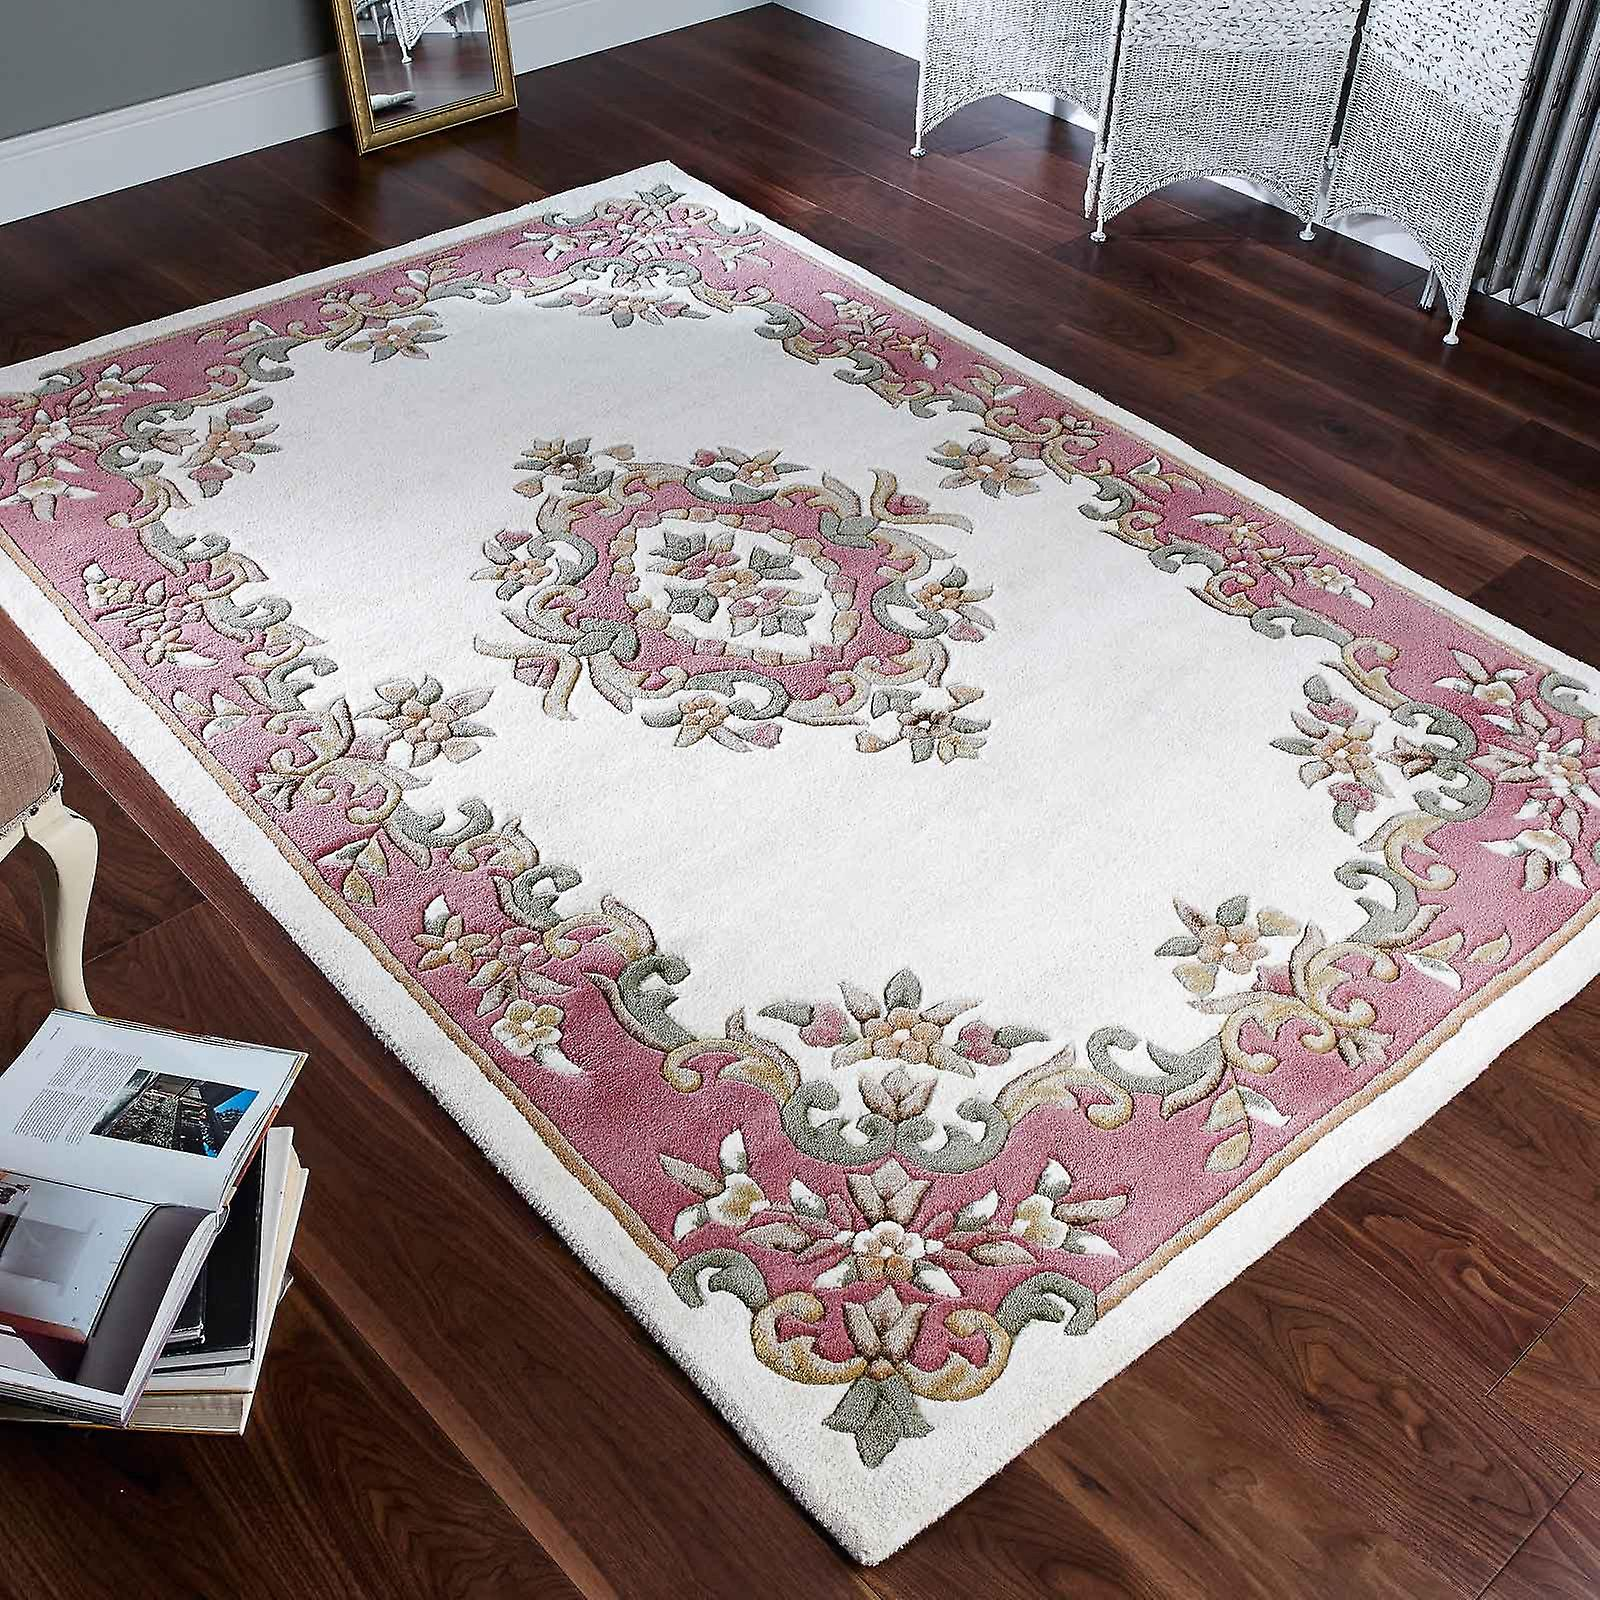 Royal Aubusson Wool Rugs In Cream Pink